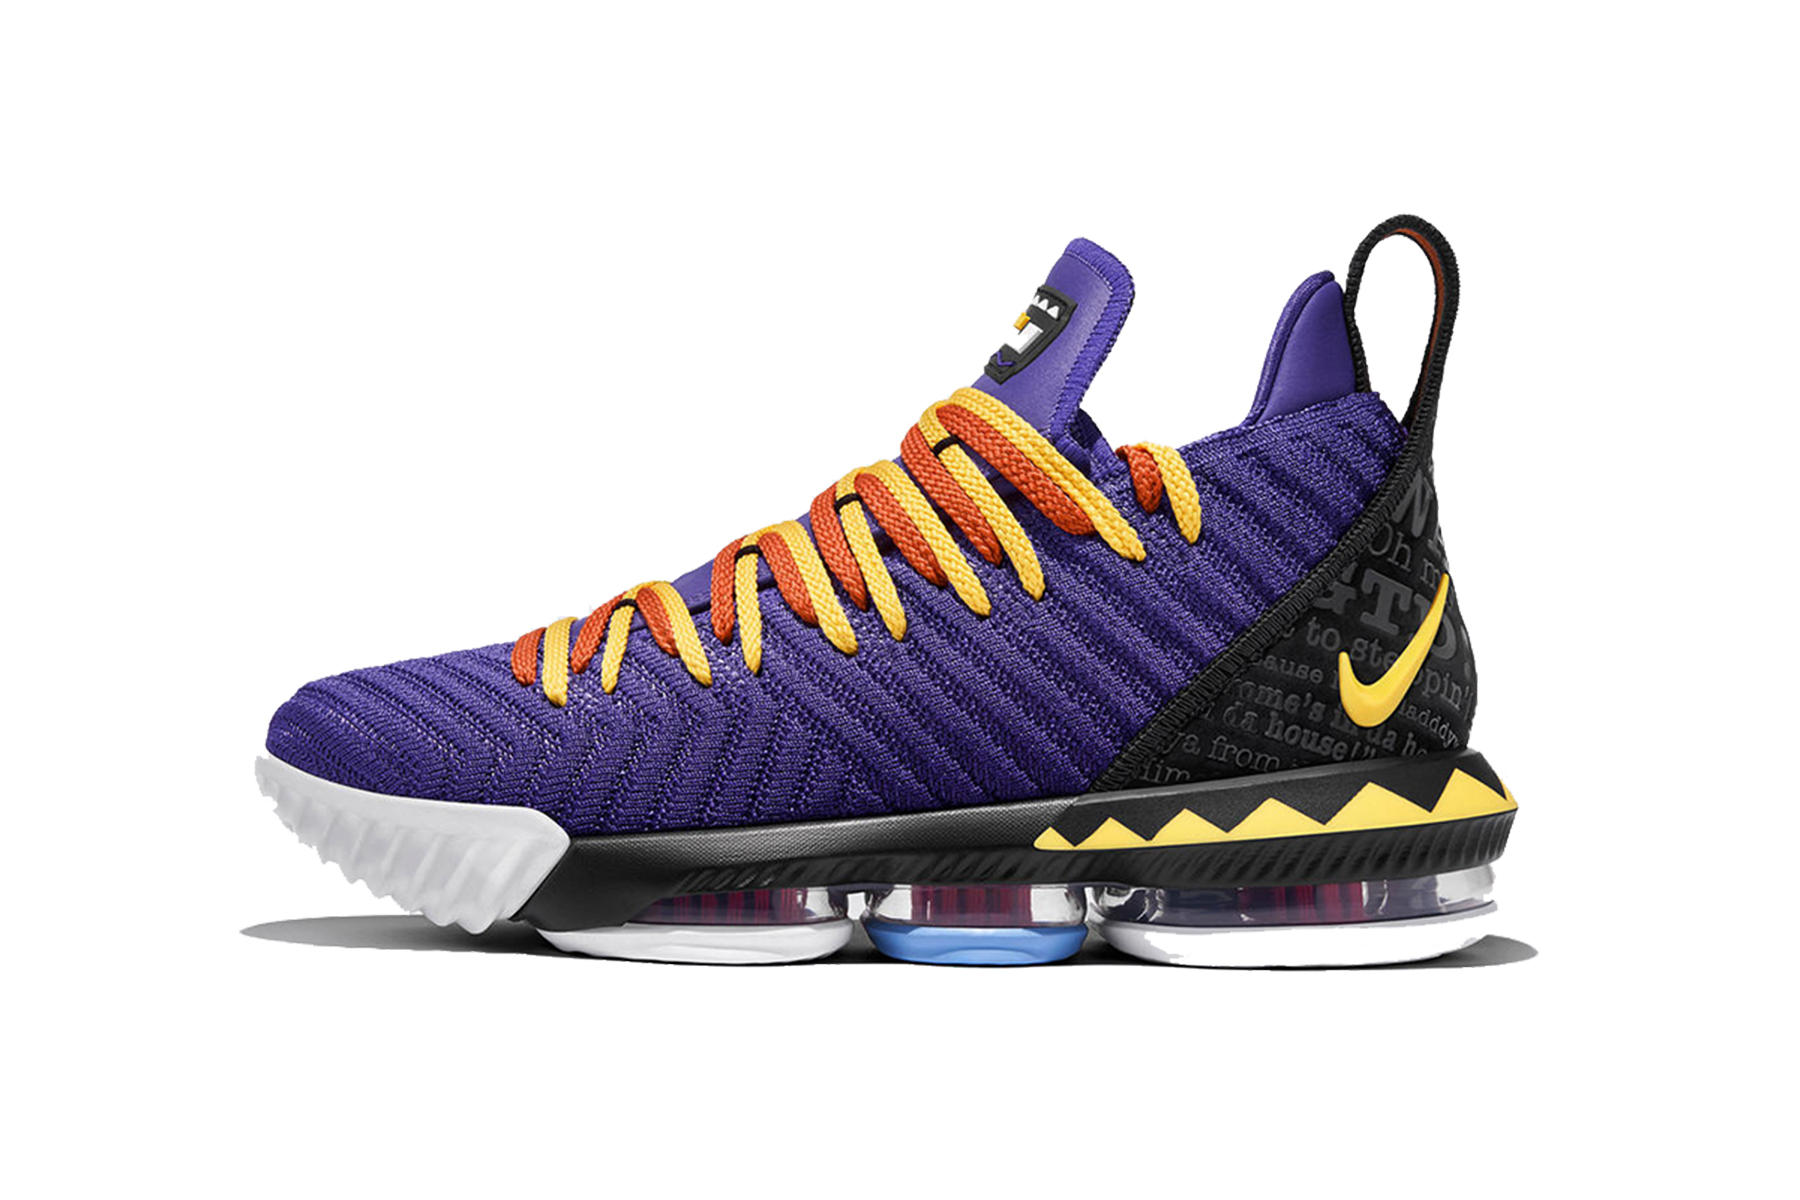 the best attitude 525e7 f7724 Nike Lebron 16 Martin Colorway Release | HYPEBEAST